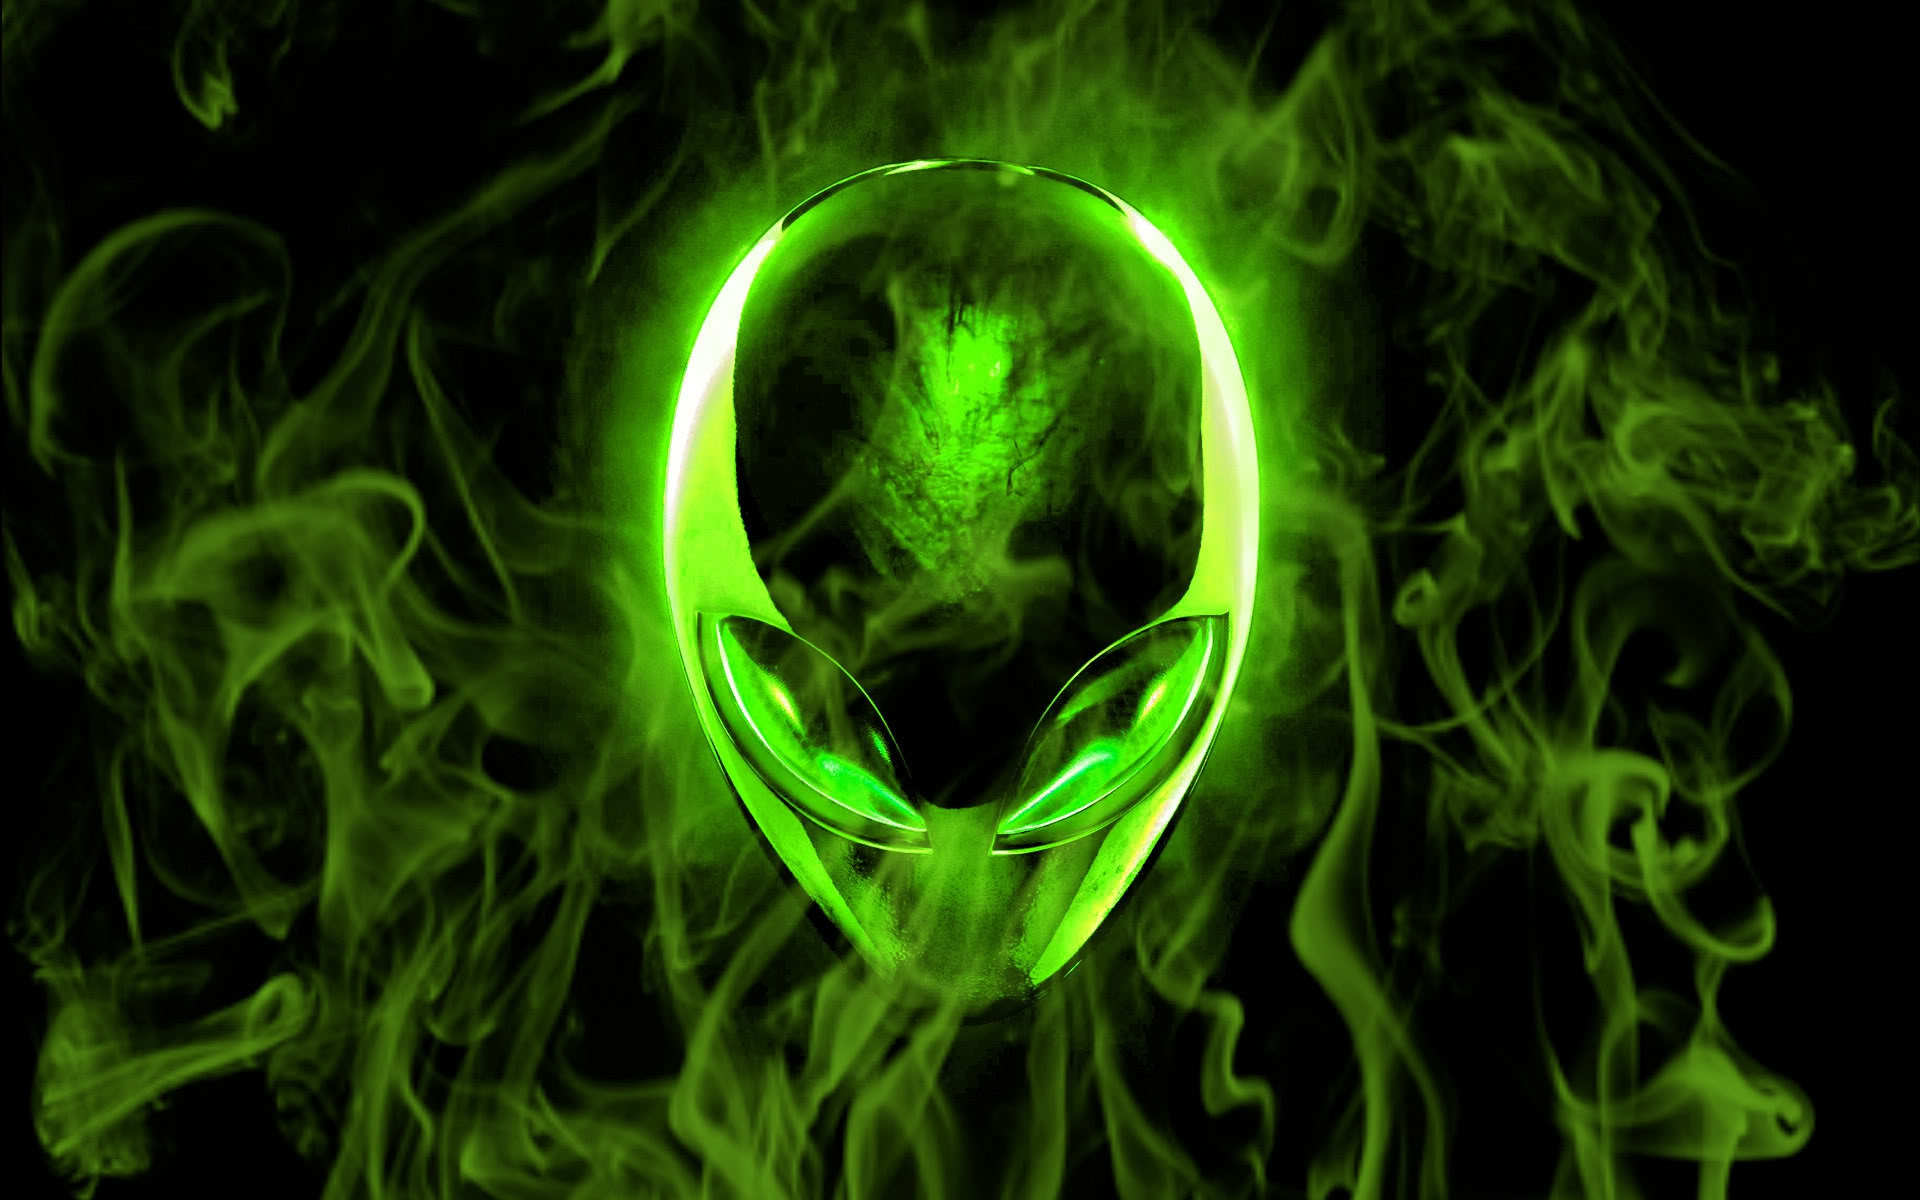 Green Flame Alienware - Wallpaper